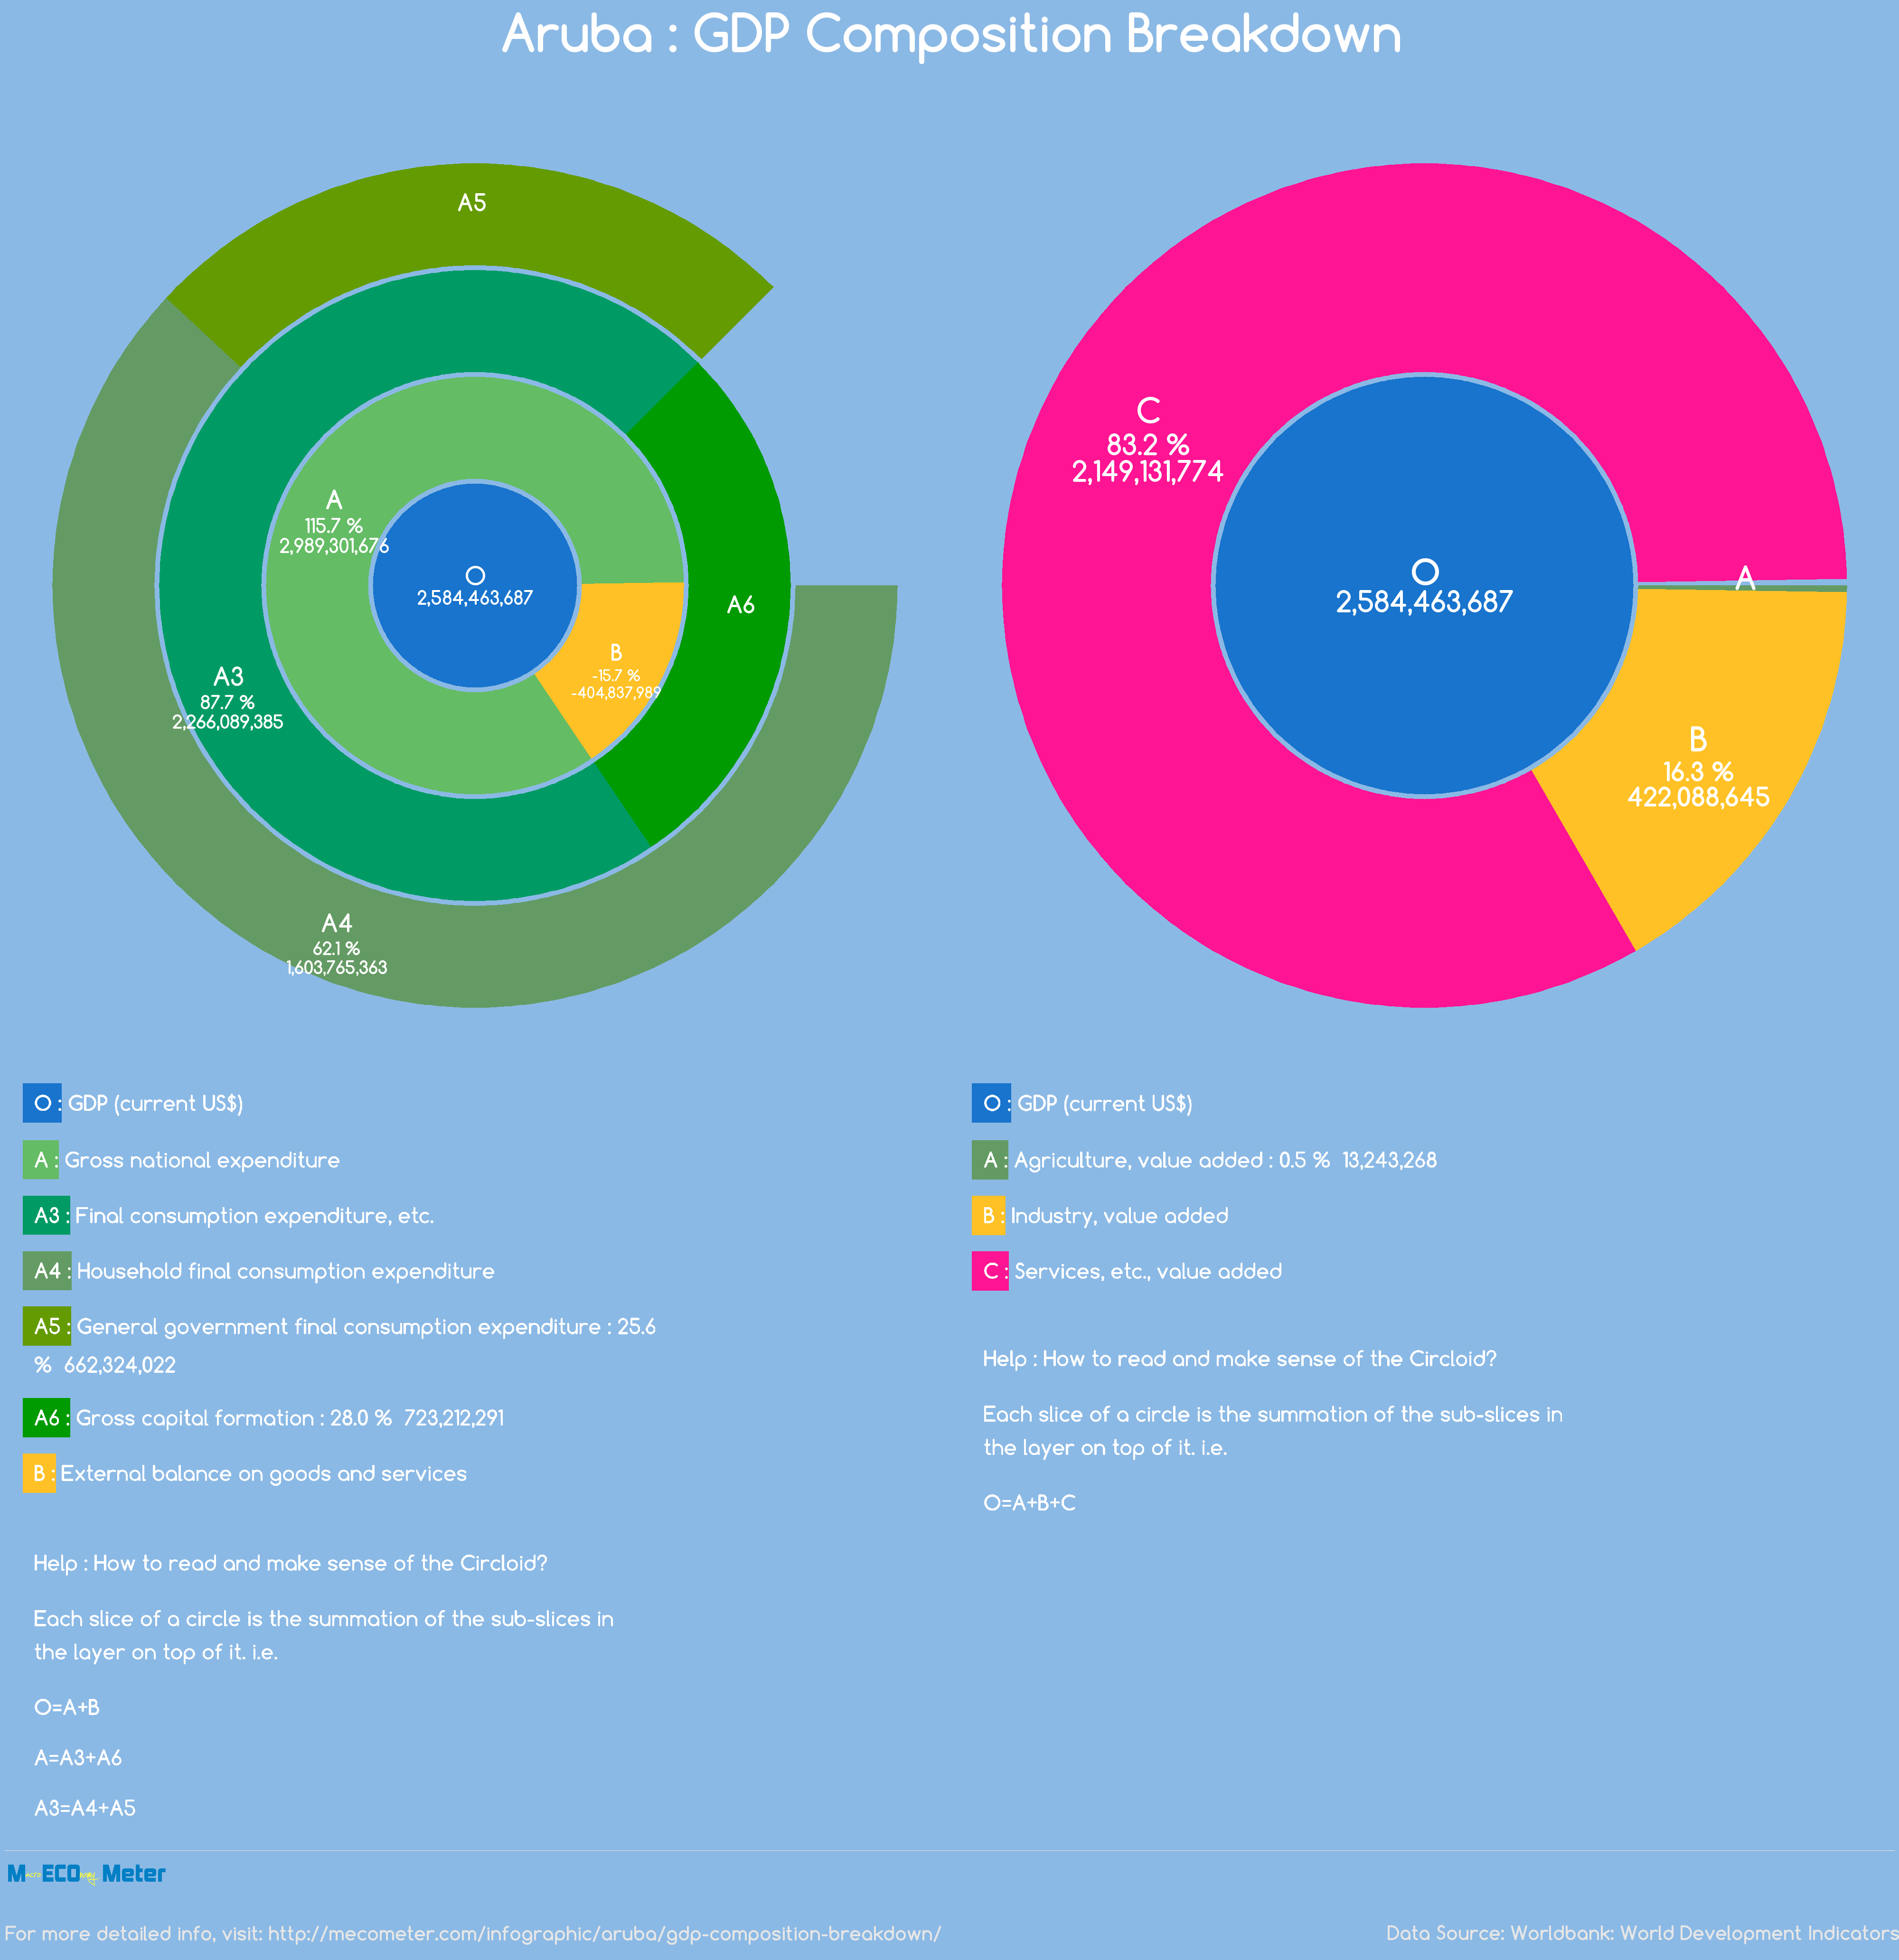 Aruba : GDP Composition Breakdown